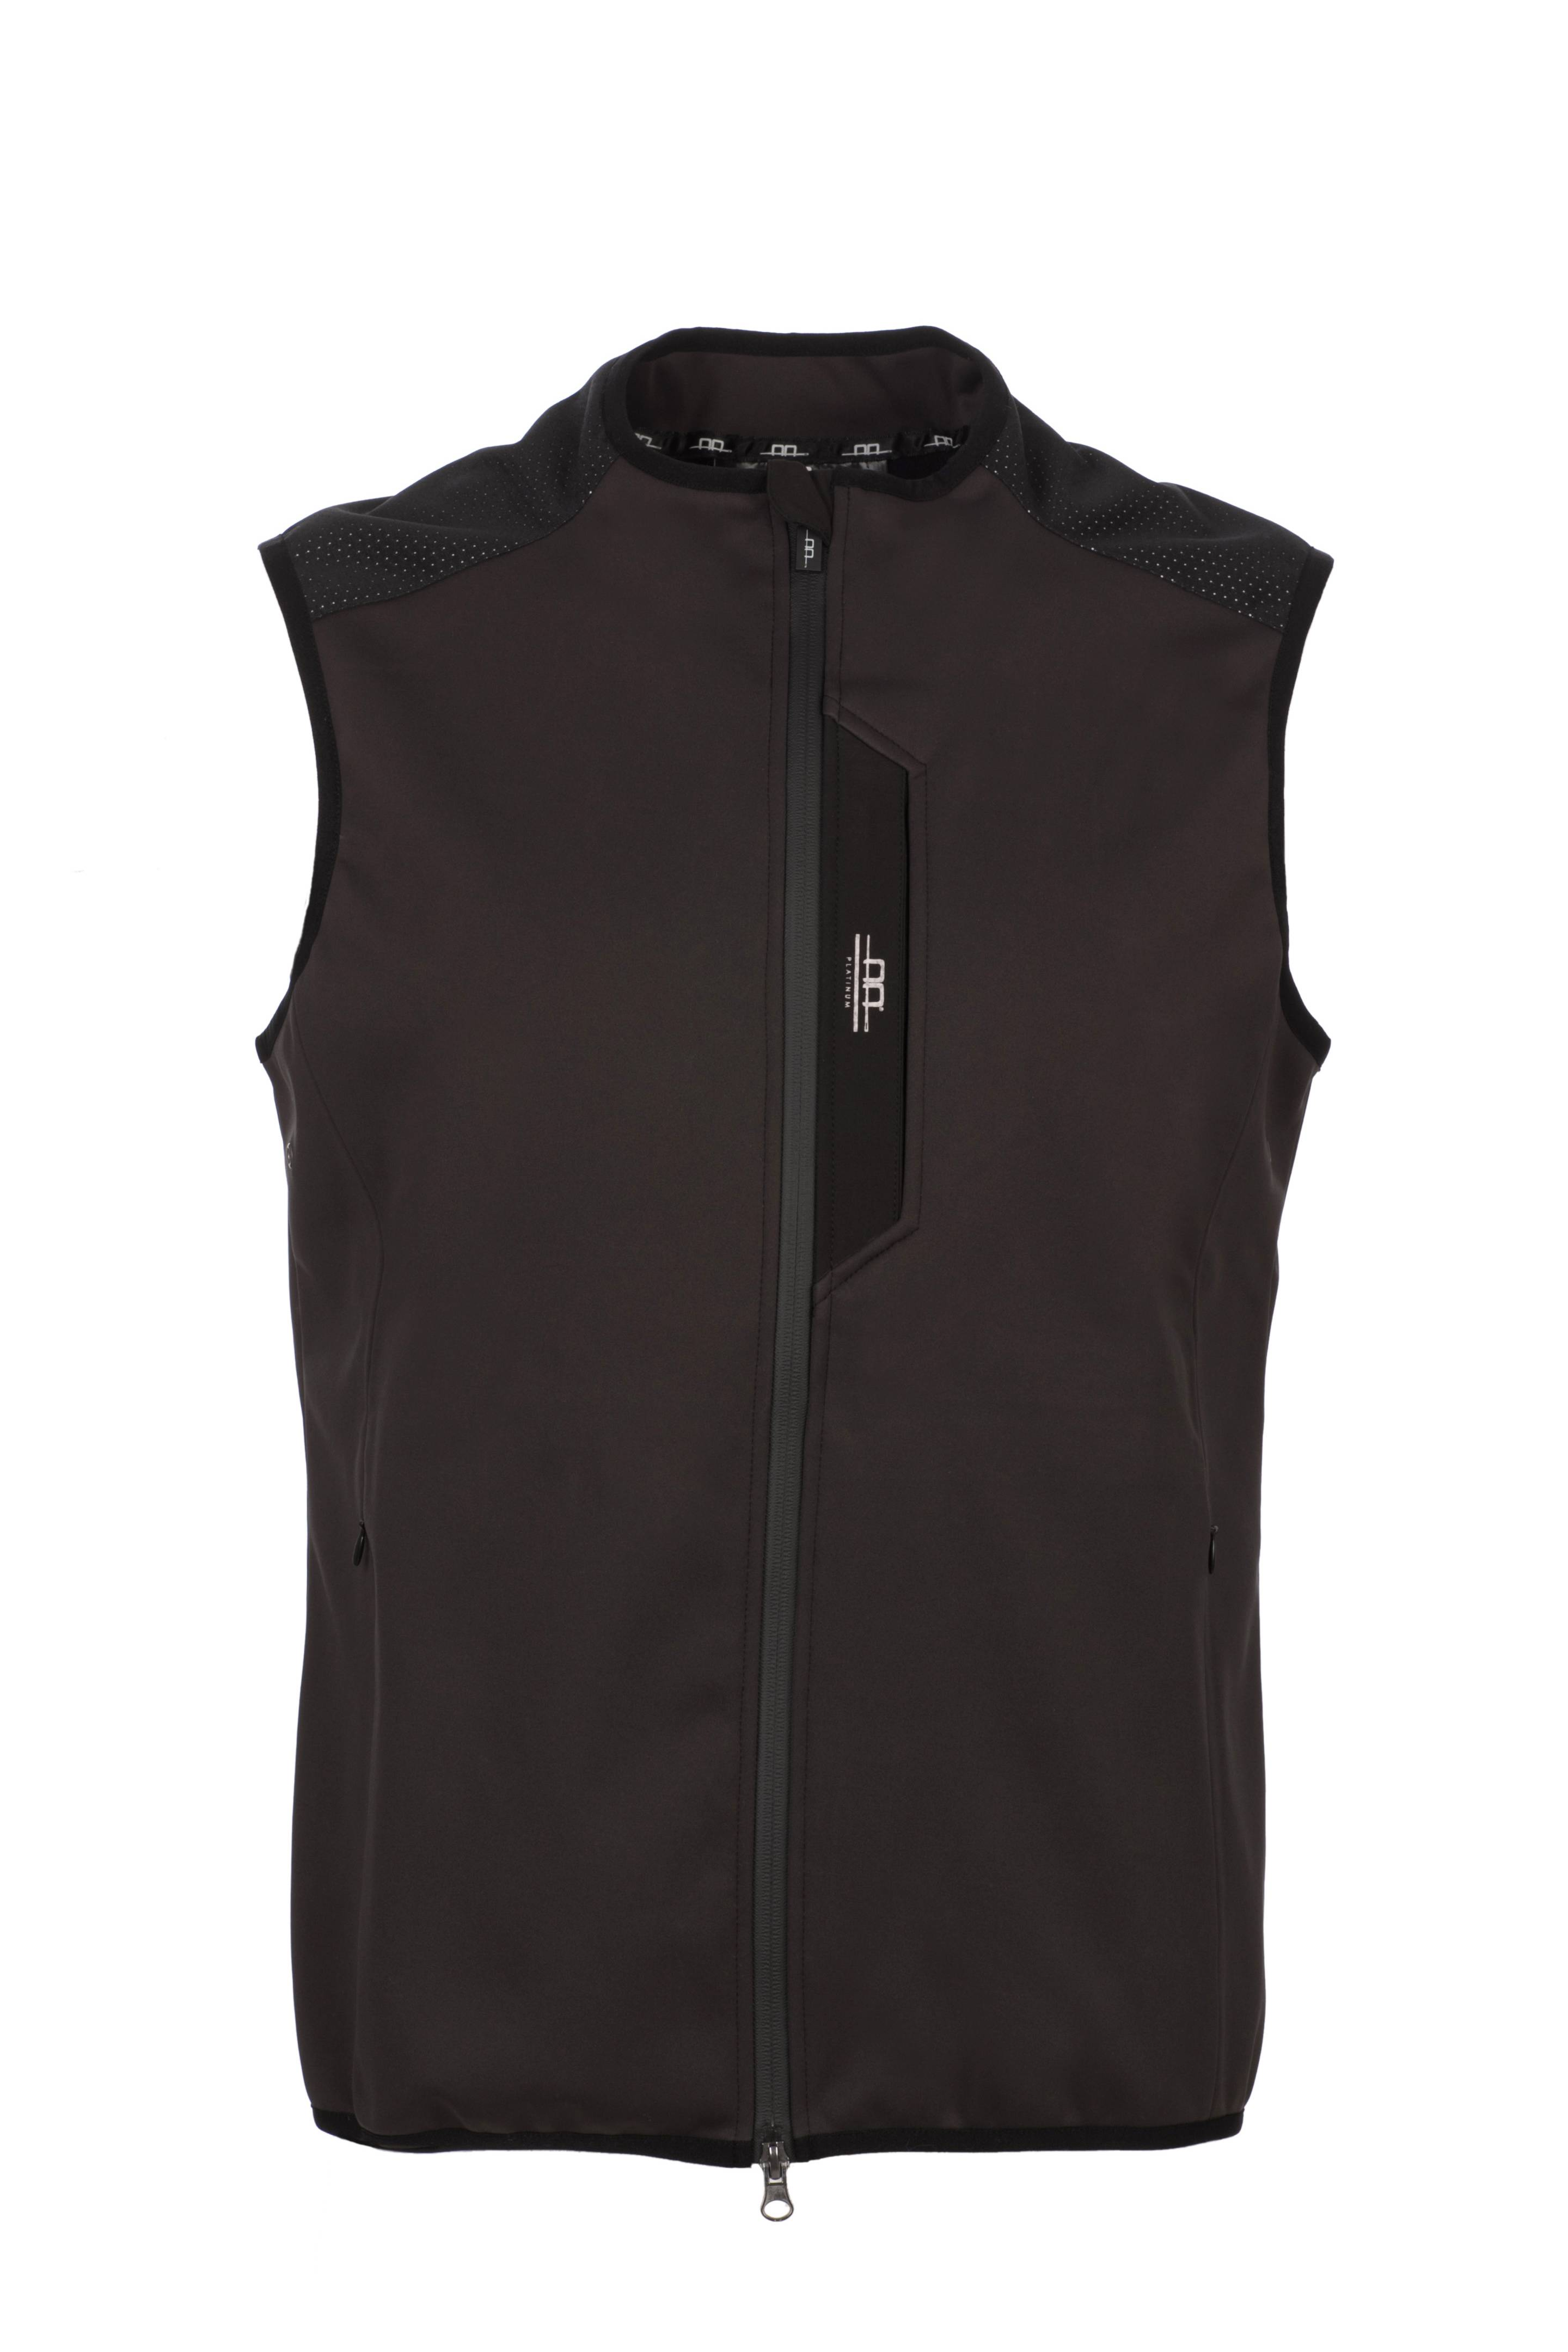 Alessandro Albanese Arco Insulated Vest Mens